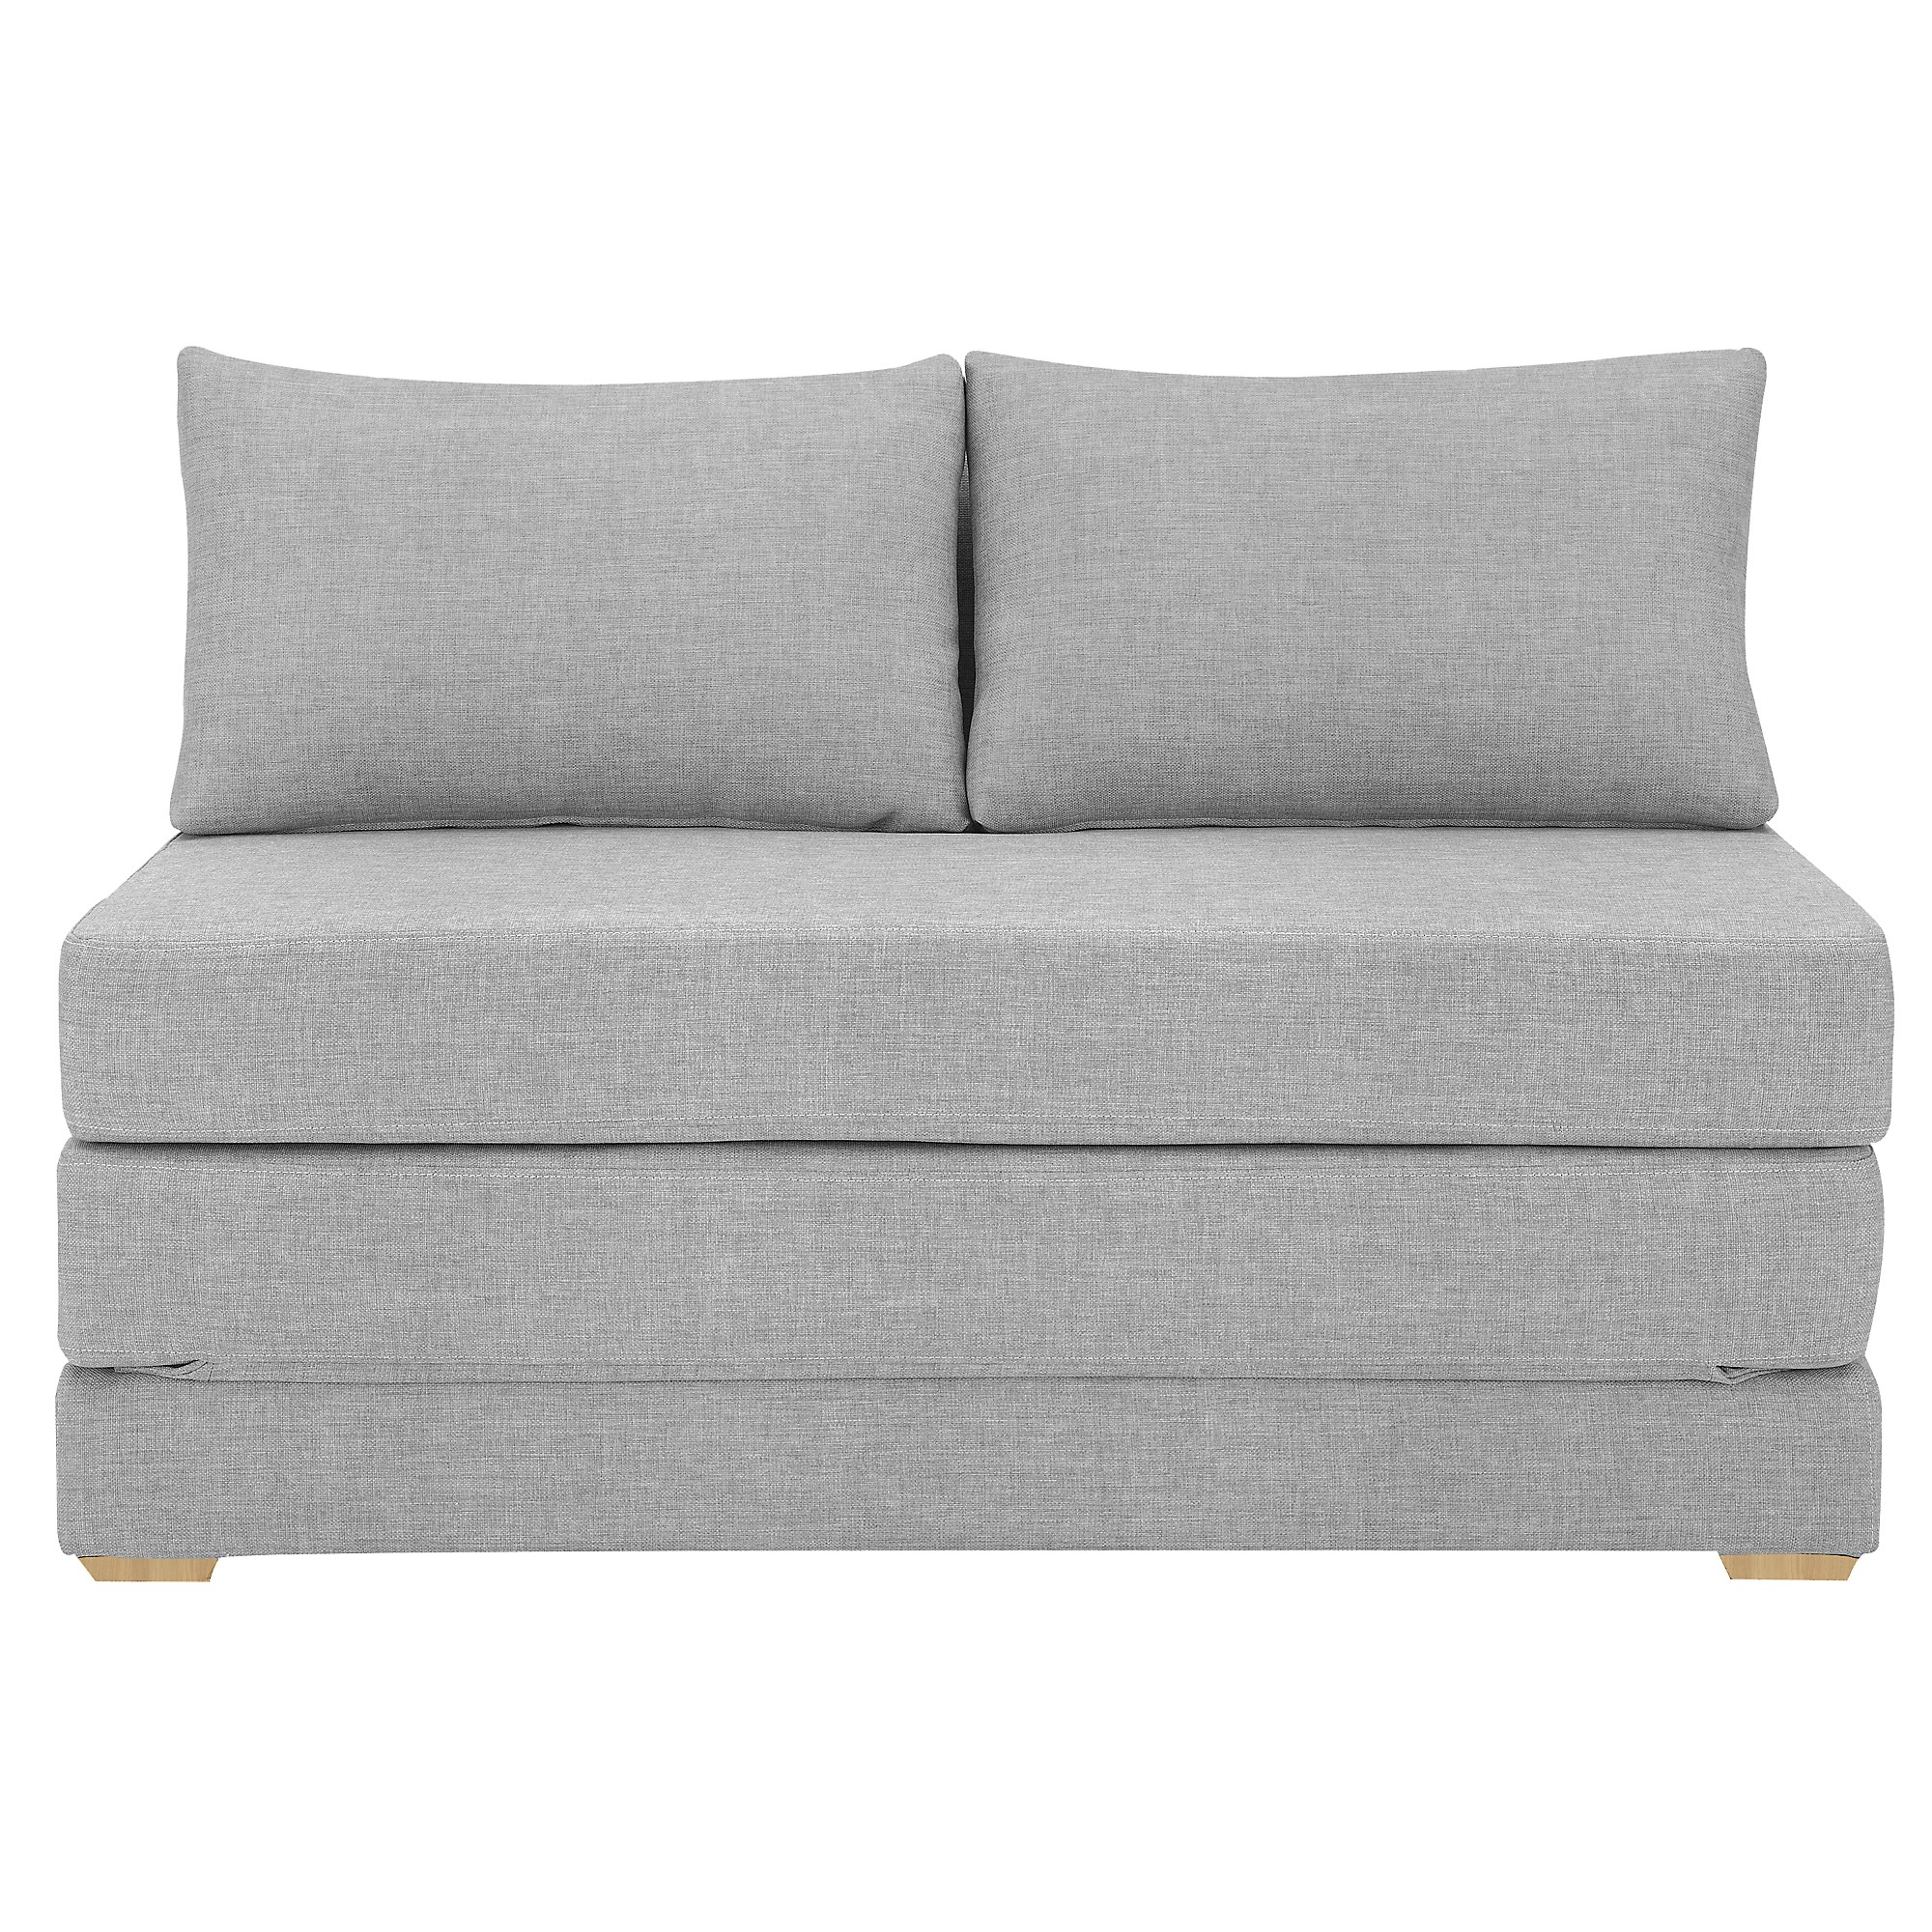 John Lewis Kip Small Sofa Bed Review Best Buy Review